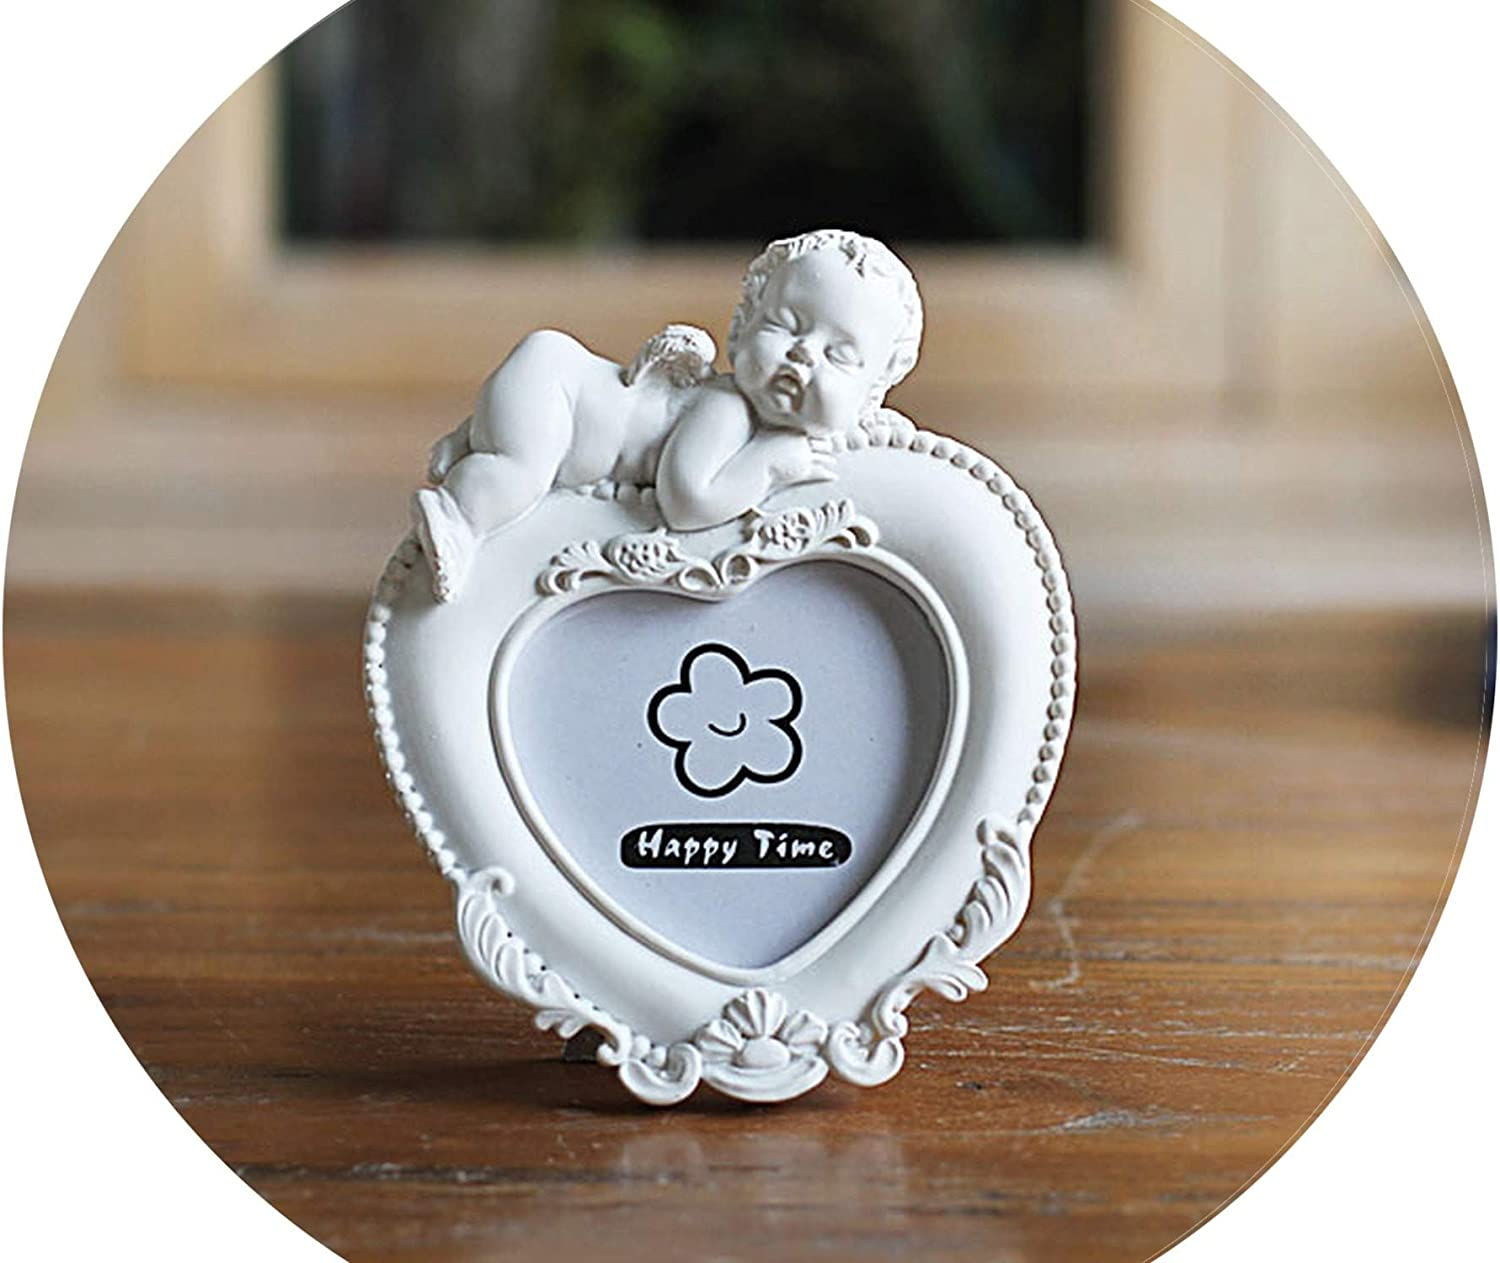 Resin Photo Frames for Pictures,2 Inch Kids Little Angle Decor Picture Frame,White Photo Frames,Cadre Photo Moderne,Ax in Type,2 inch